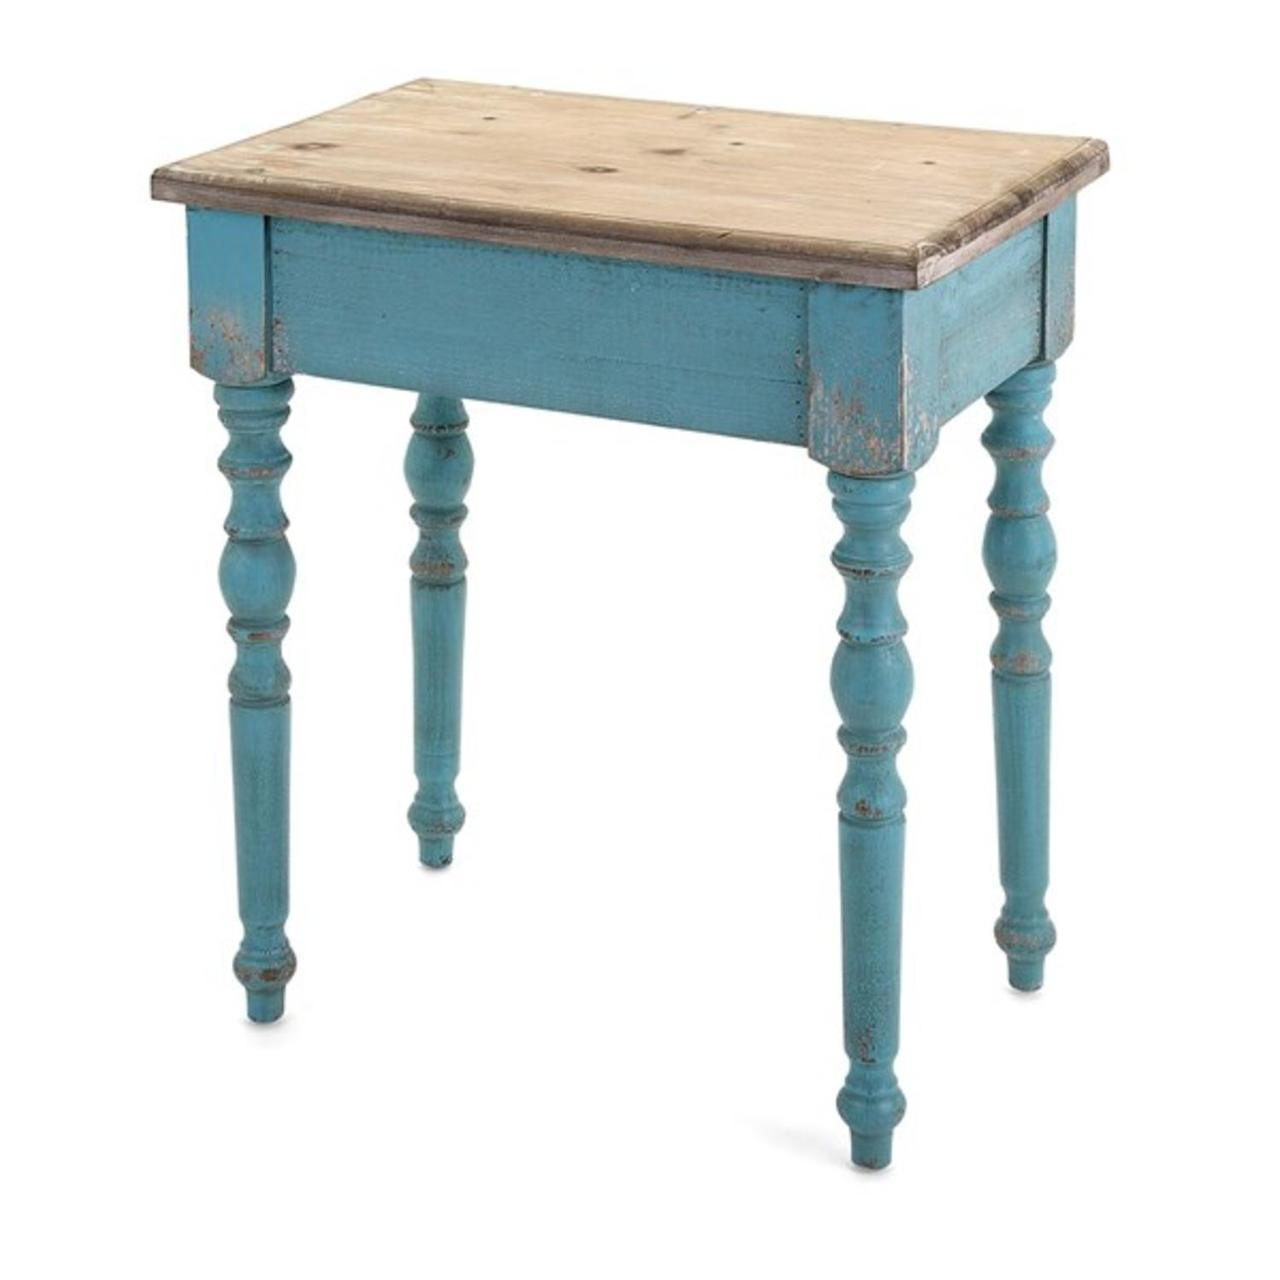 dark aqua blue light sandy brown distressed fir decorative teal accent table and round rattan side reclaimed wood kitchen pendant lighting white umbrella small designer coffee